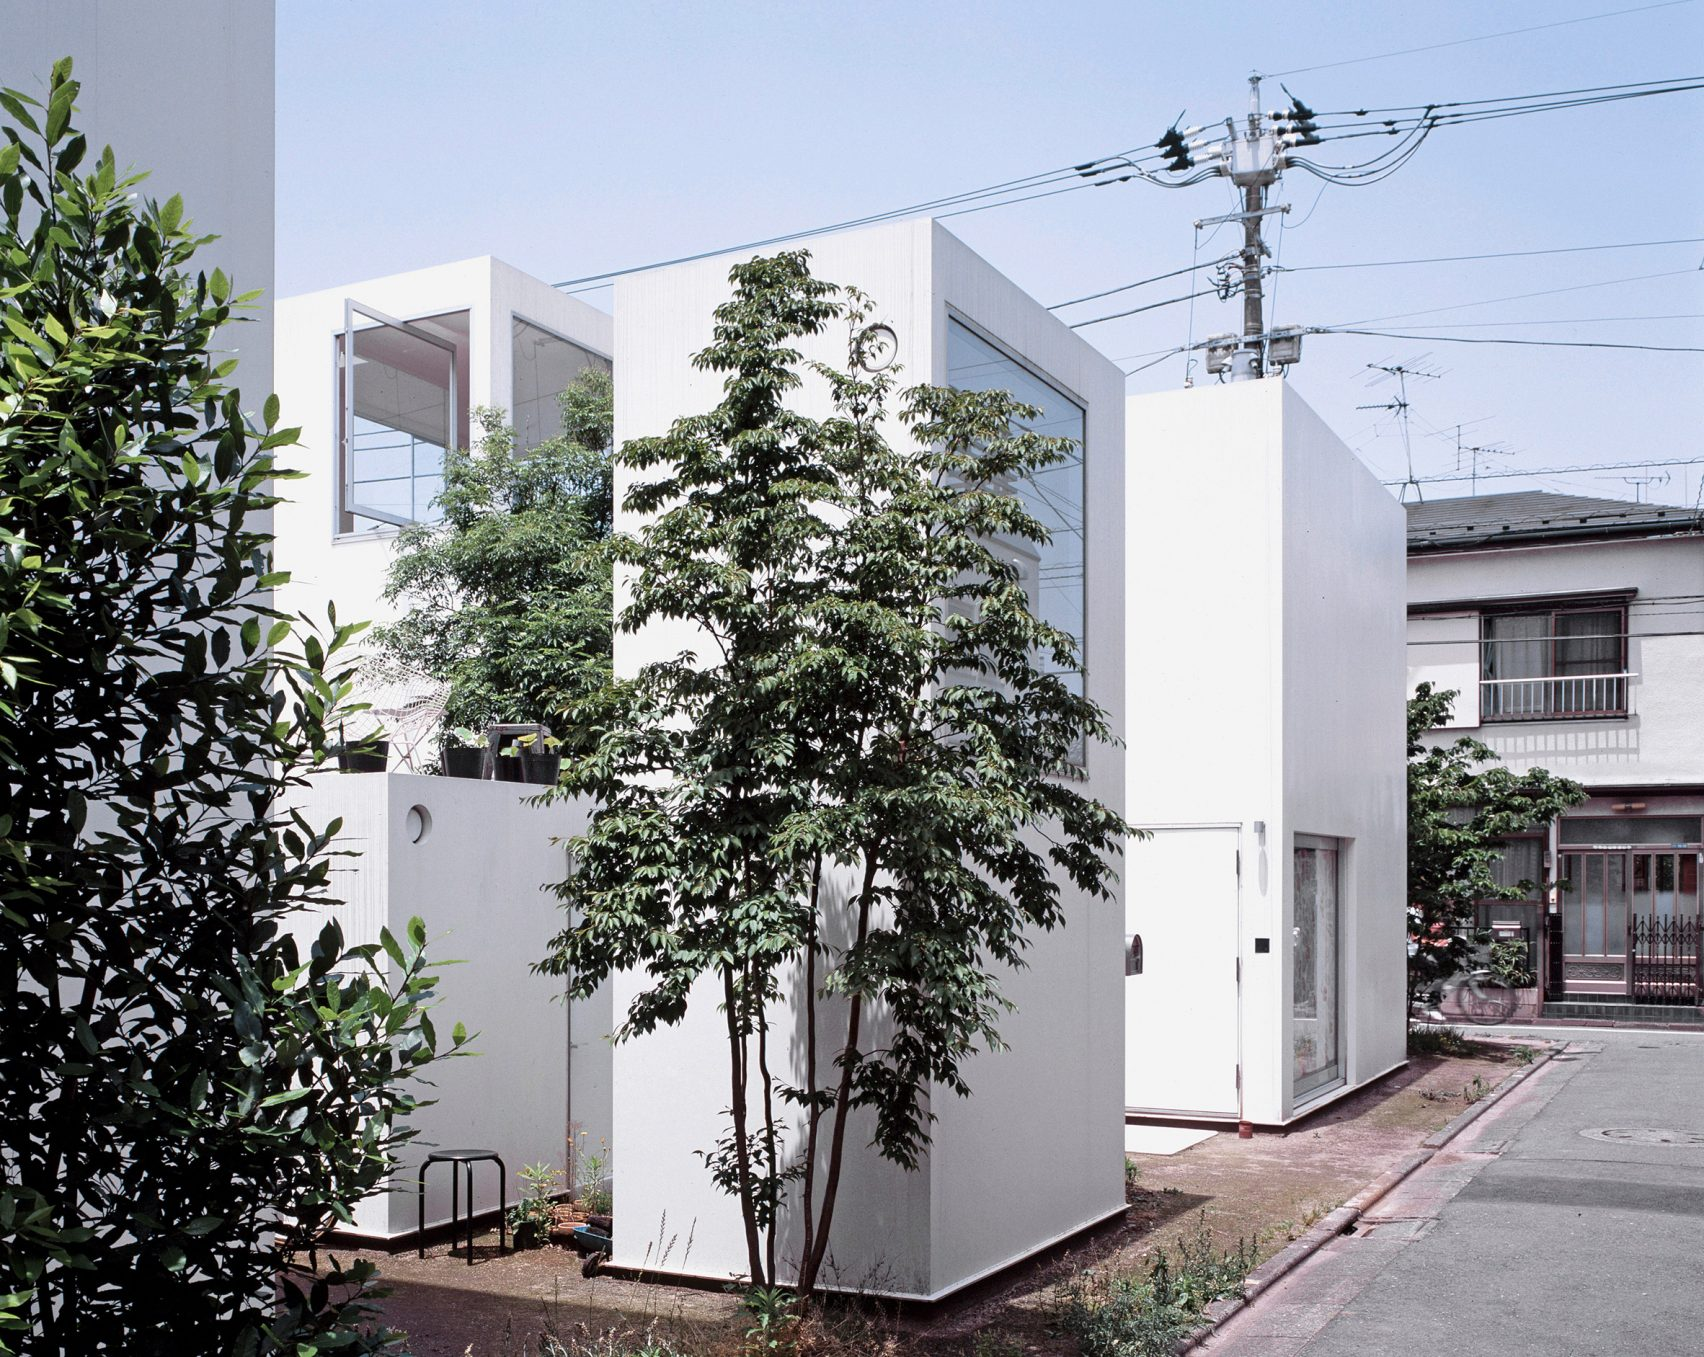 moriyama-house-photos-edmund-sumner-architecture-photography-residential-japan_dezeen_2364_col_1-1704x1357